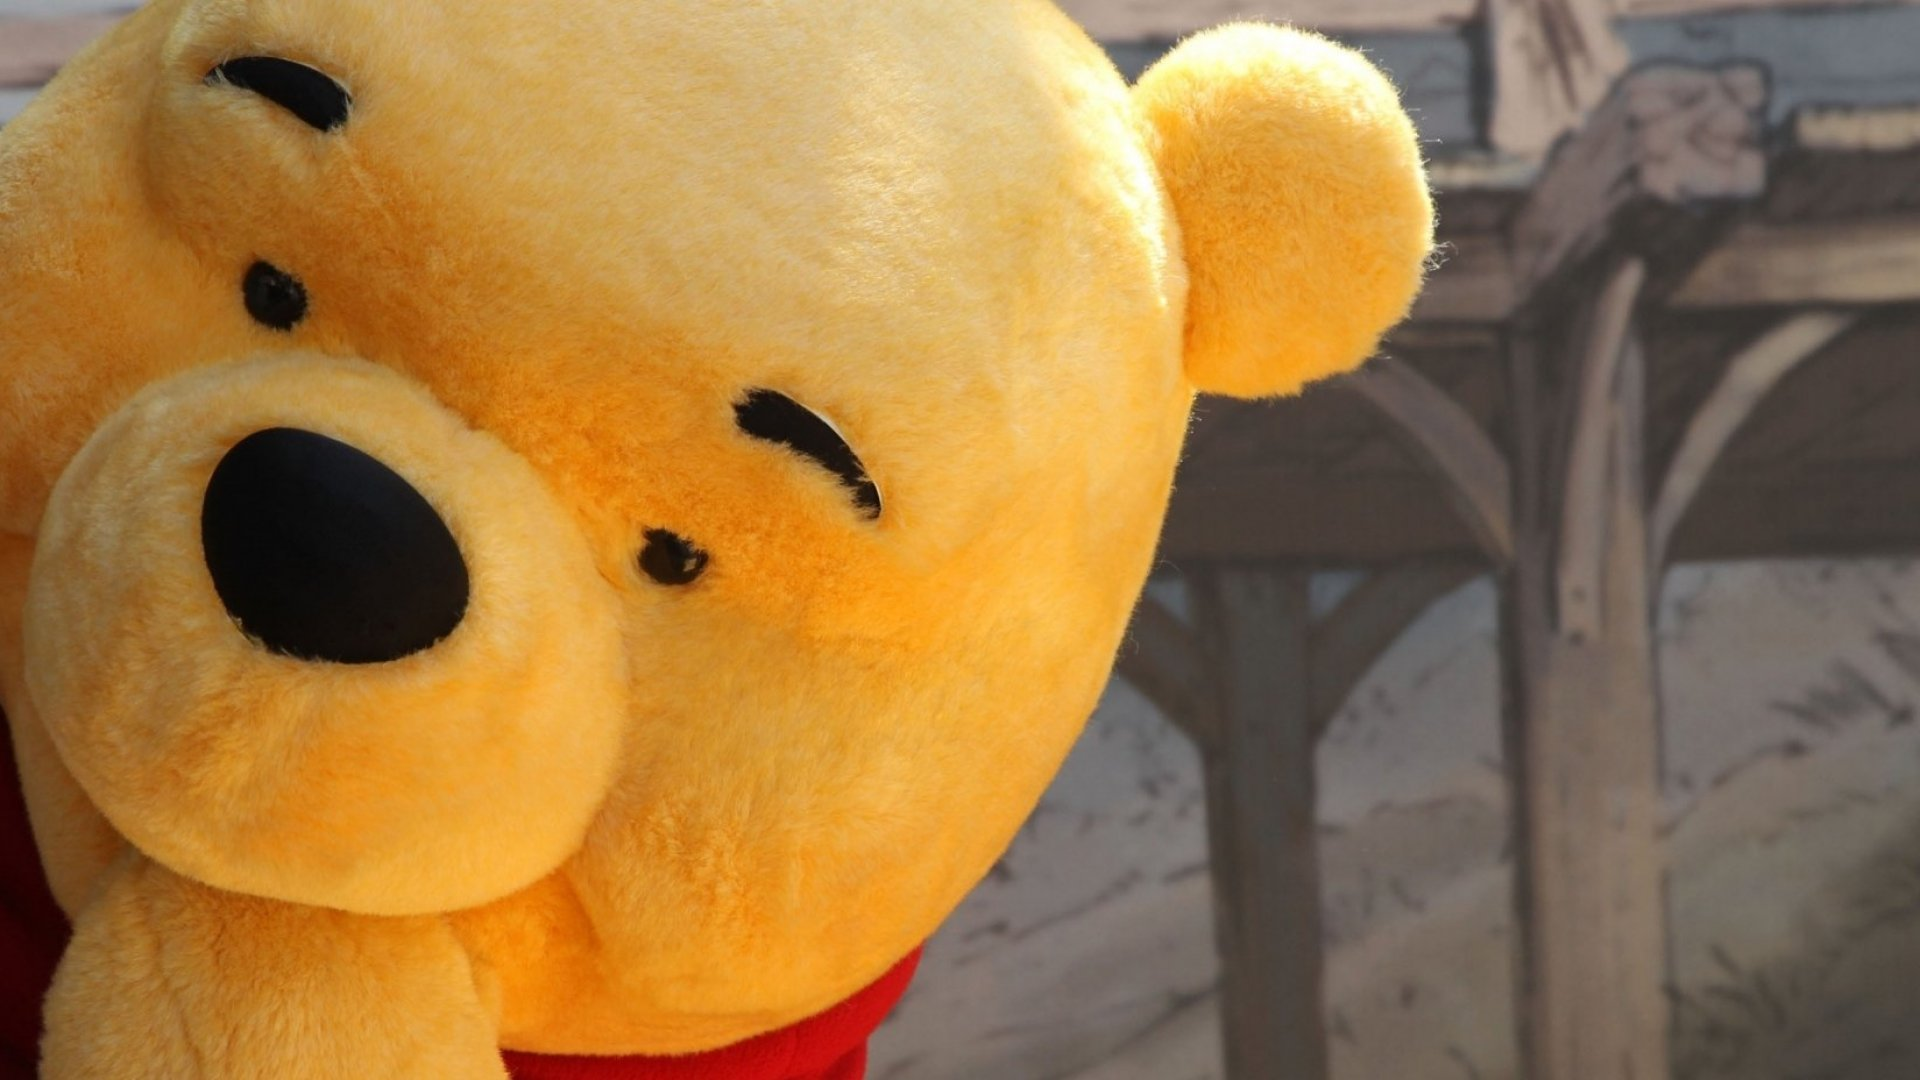 17 Wise Winnie The Pooh Quotes About The Remarkable Power Of Kindness Love And Acceptance Inc Com